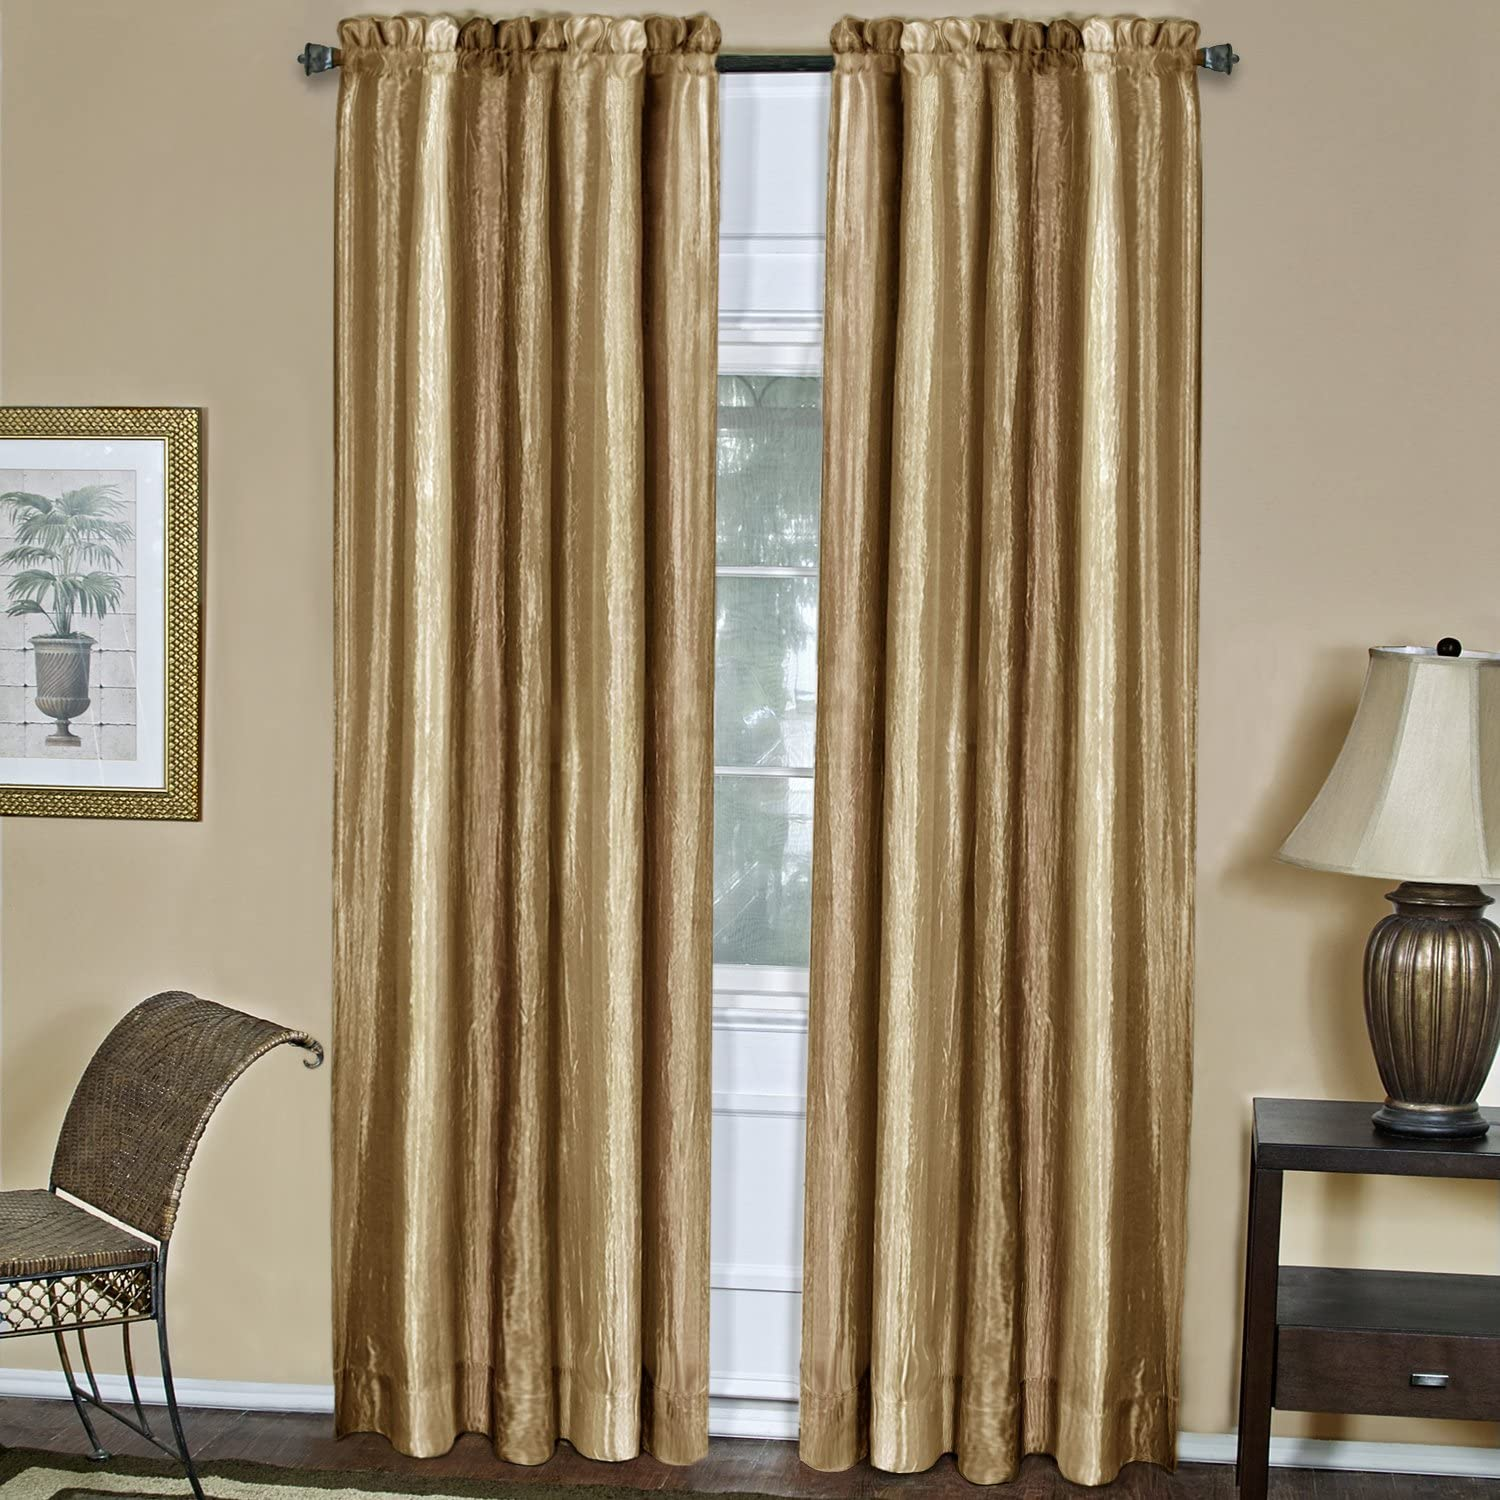 Achim Home Furnishings, Sandstone Ombre Window Panel, 50 84-Inch, Inch Inch